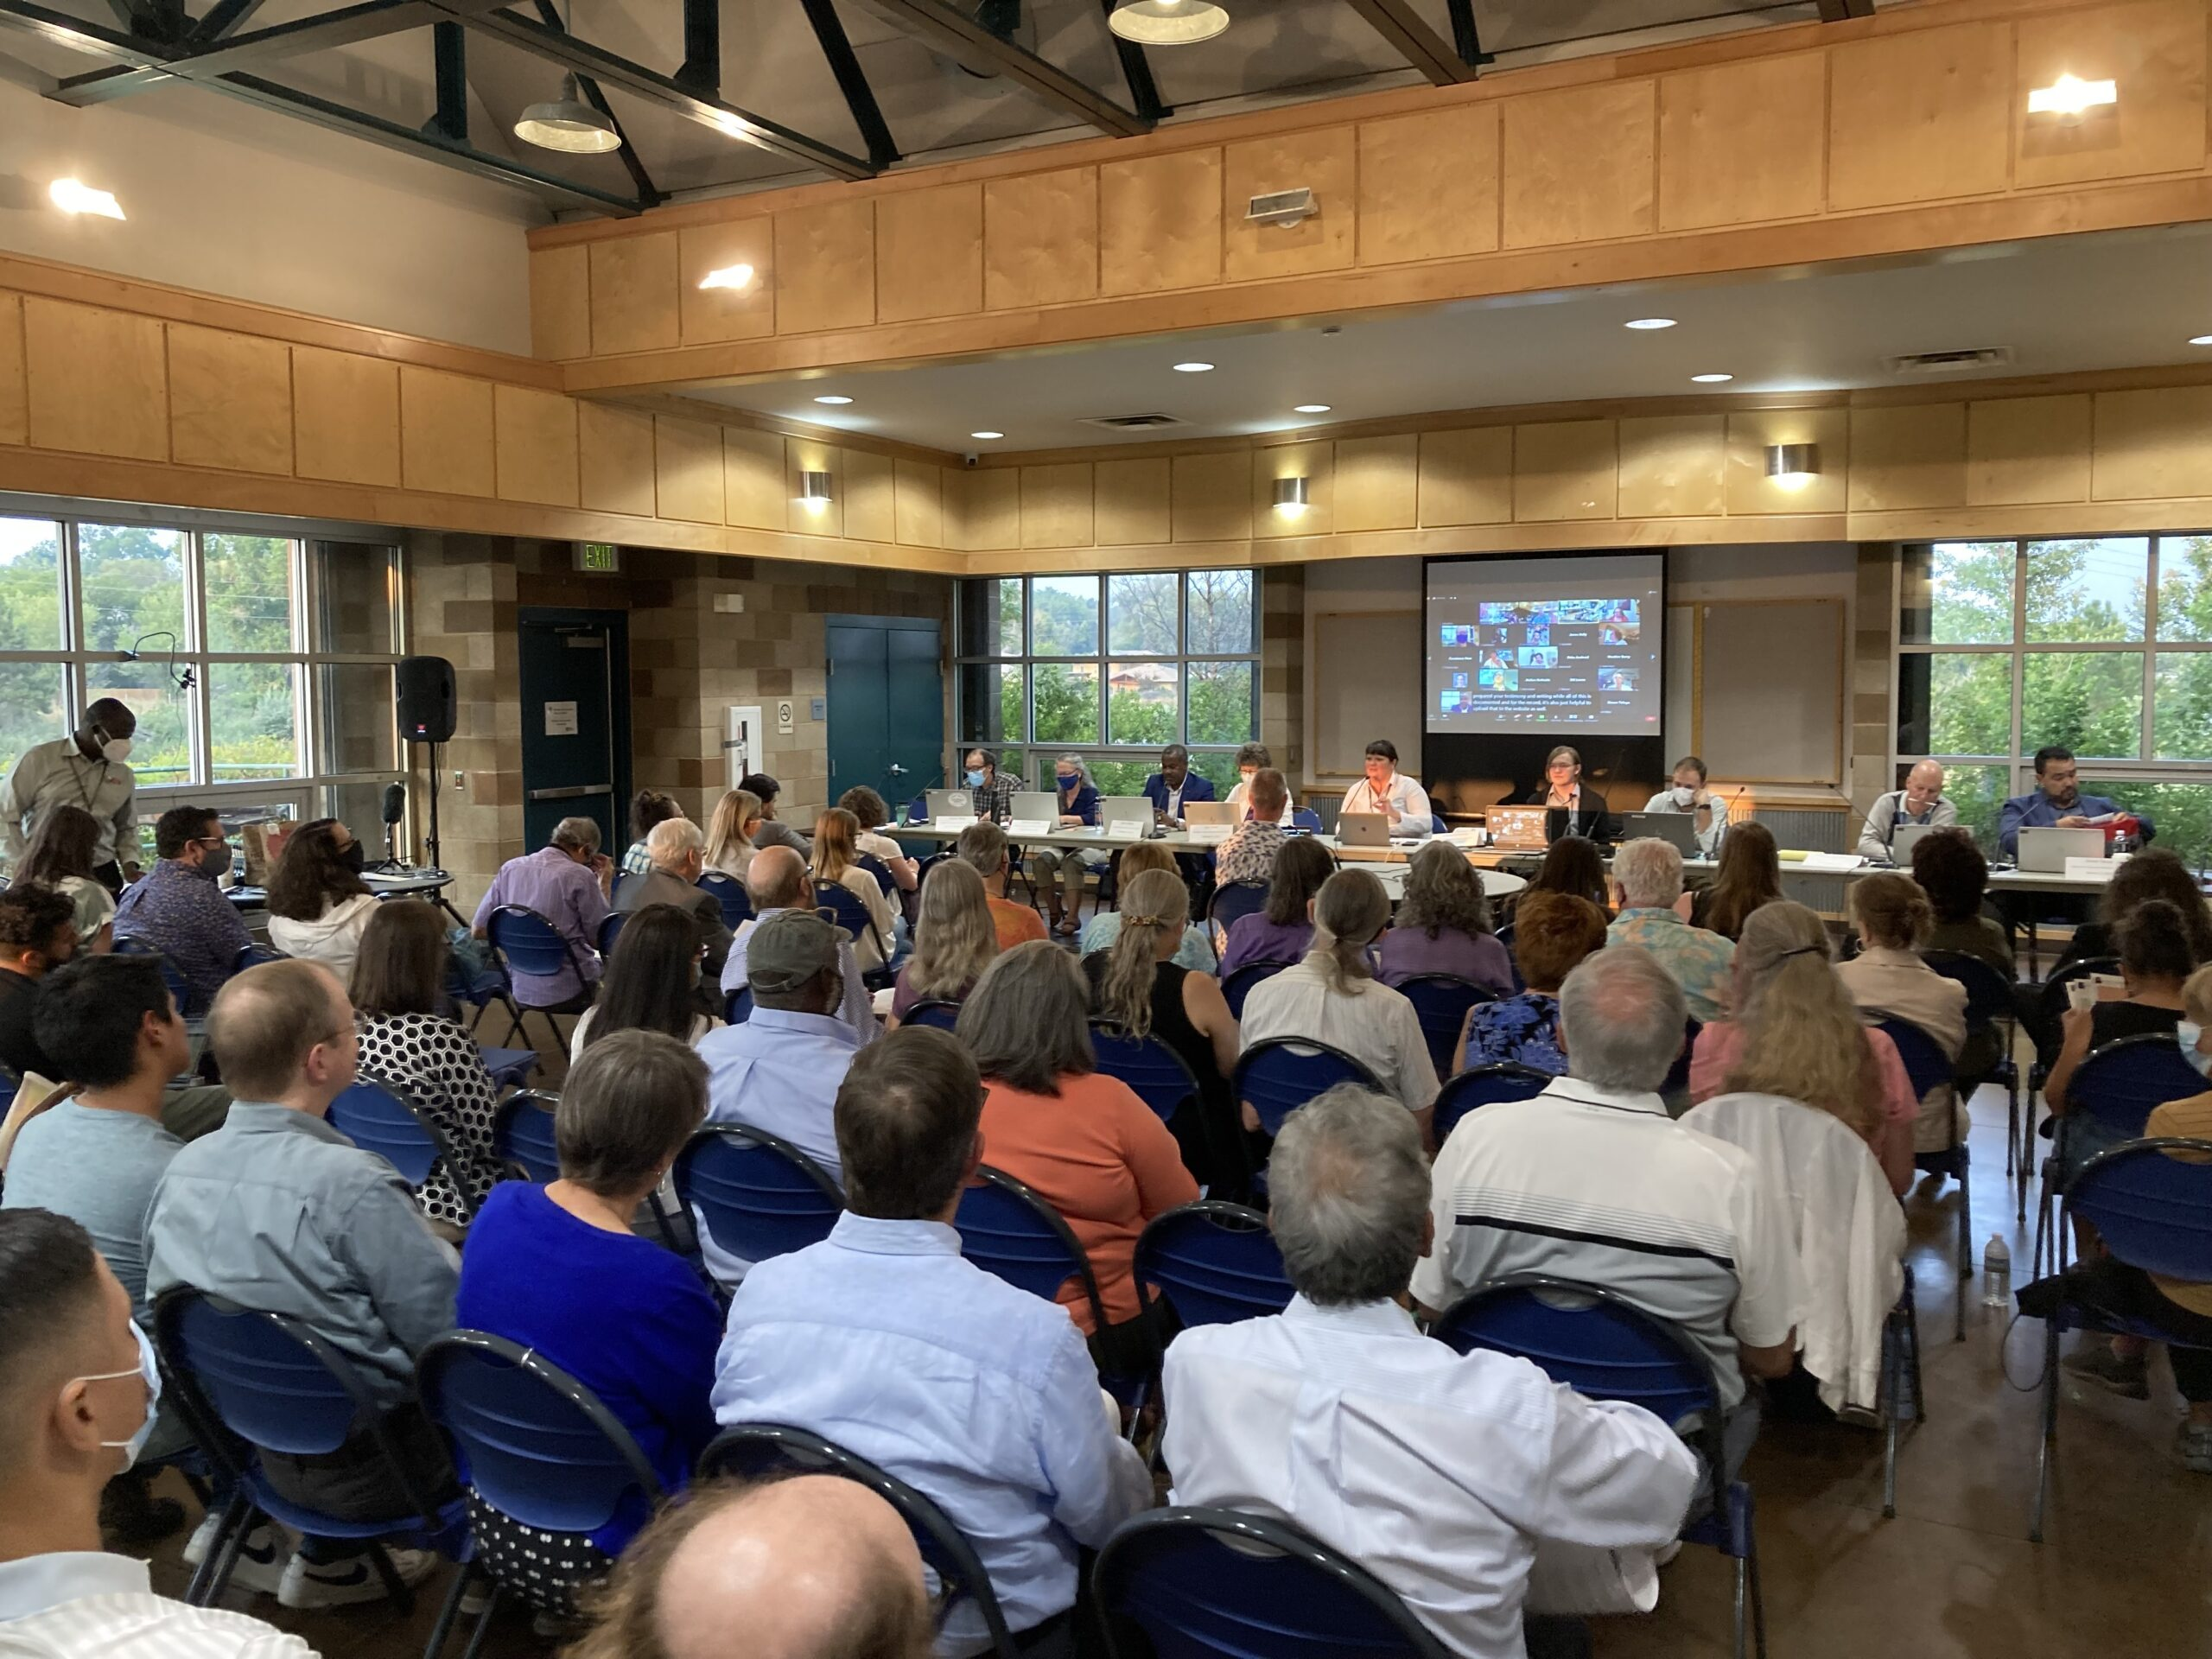 It's a packed room at a joint Colorado Independent Redistricting Commissions public hearing in Longmont, CO, on August 10, 2021.